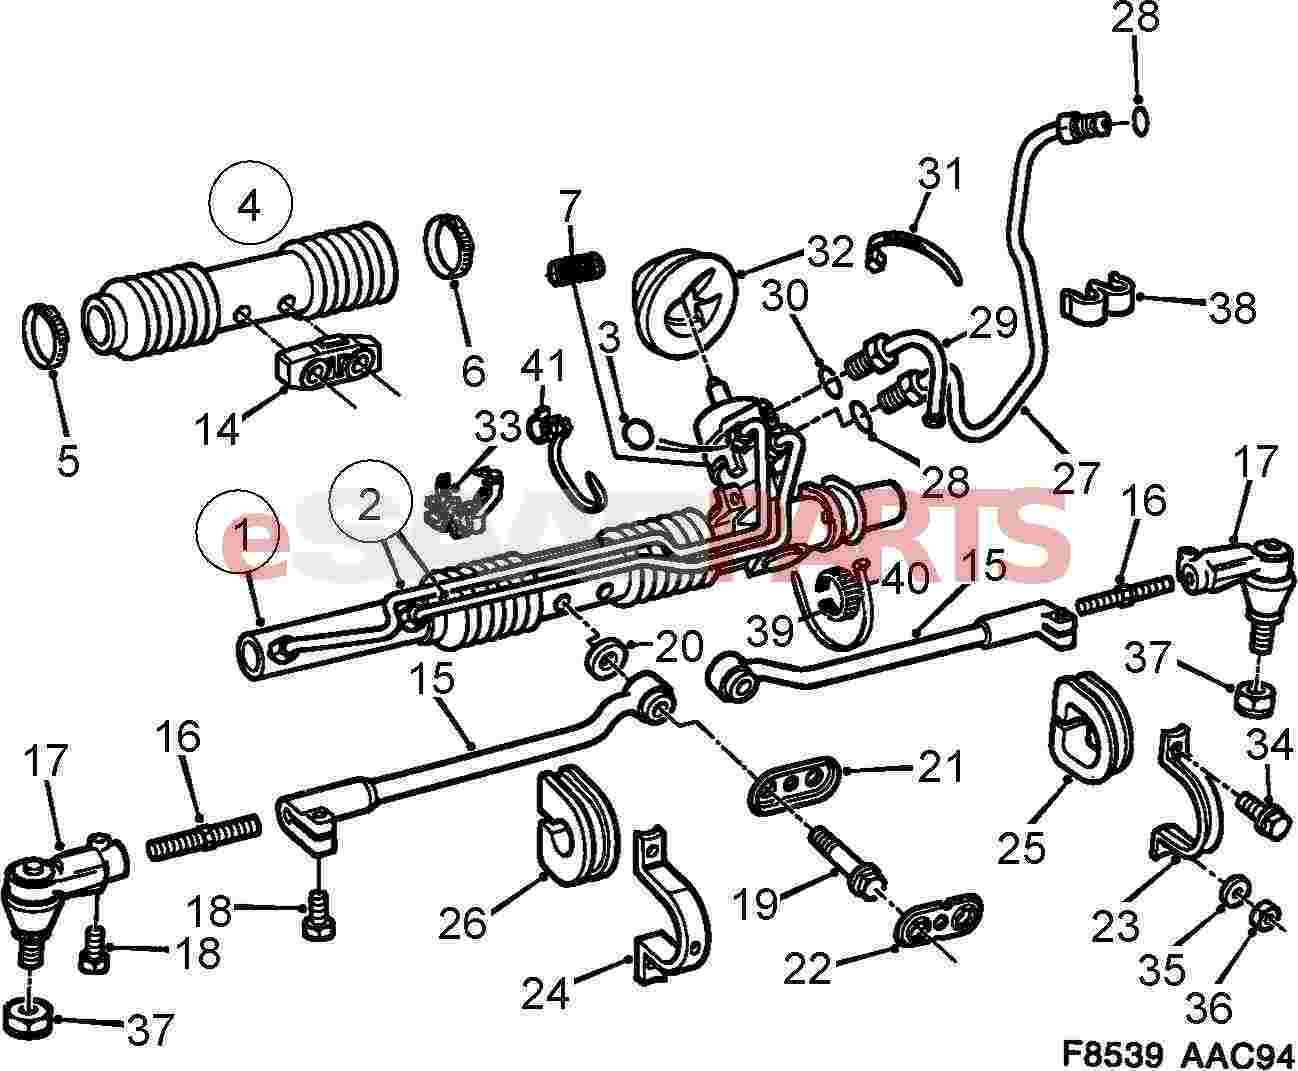 Saab 900 Front Suspension Diagram. Saab. Auto Parts